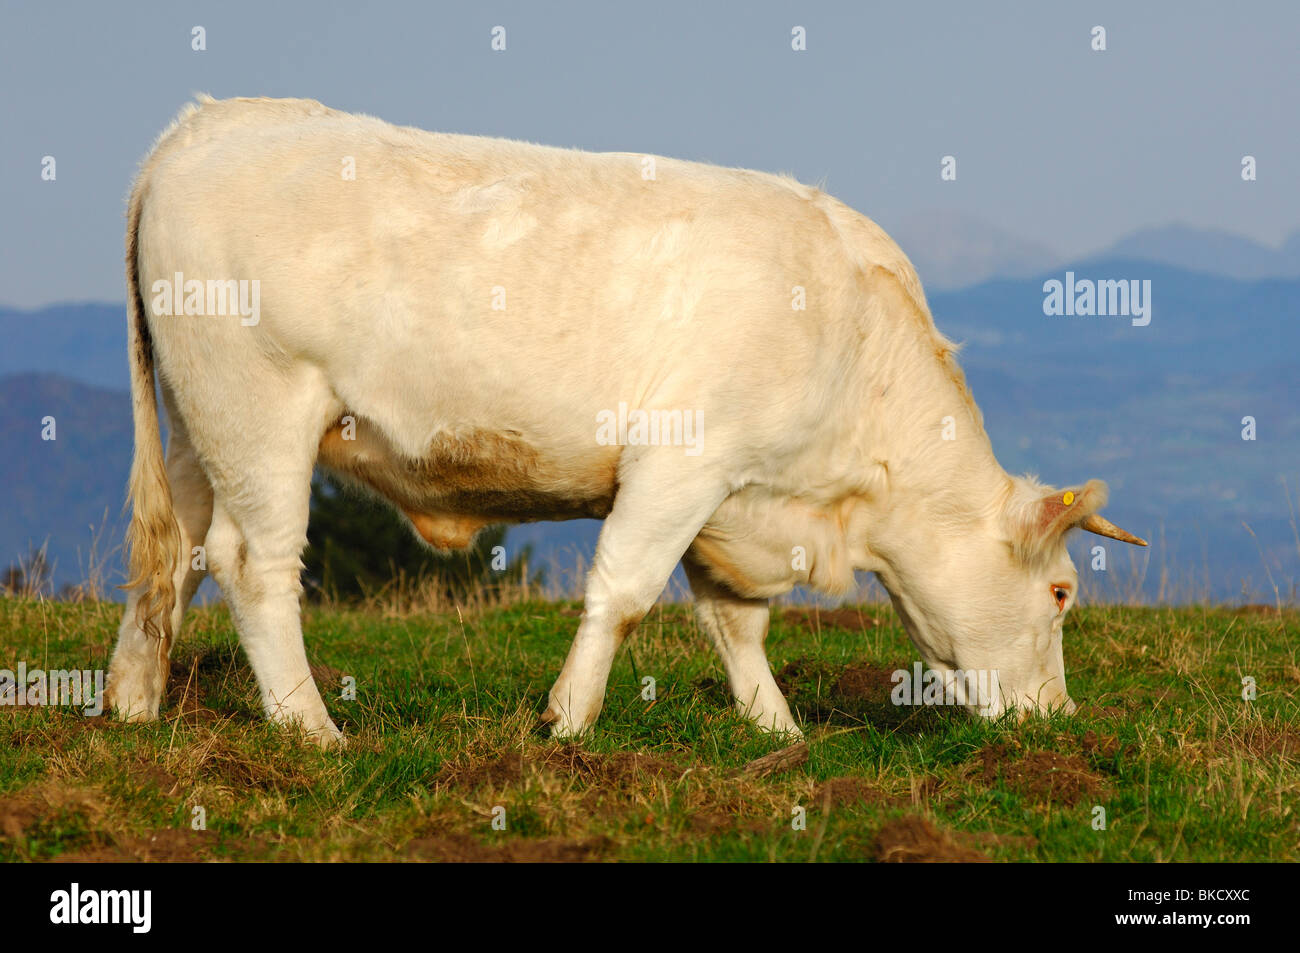 Charolais fattening bull on a mountain pasture, France - Stock Image